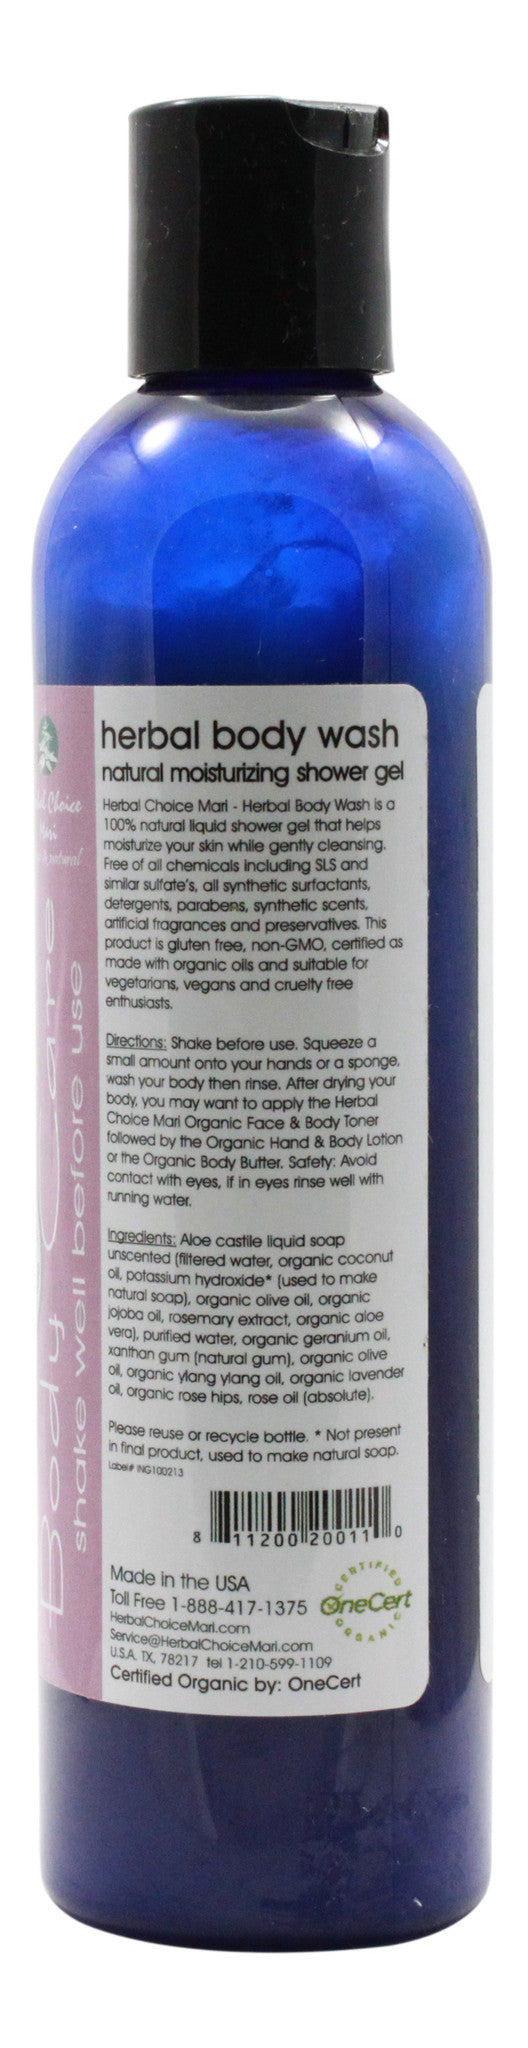 Natural Herbal Body Wash - Rose & Y/Yang - 8 oz Bottle - Info